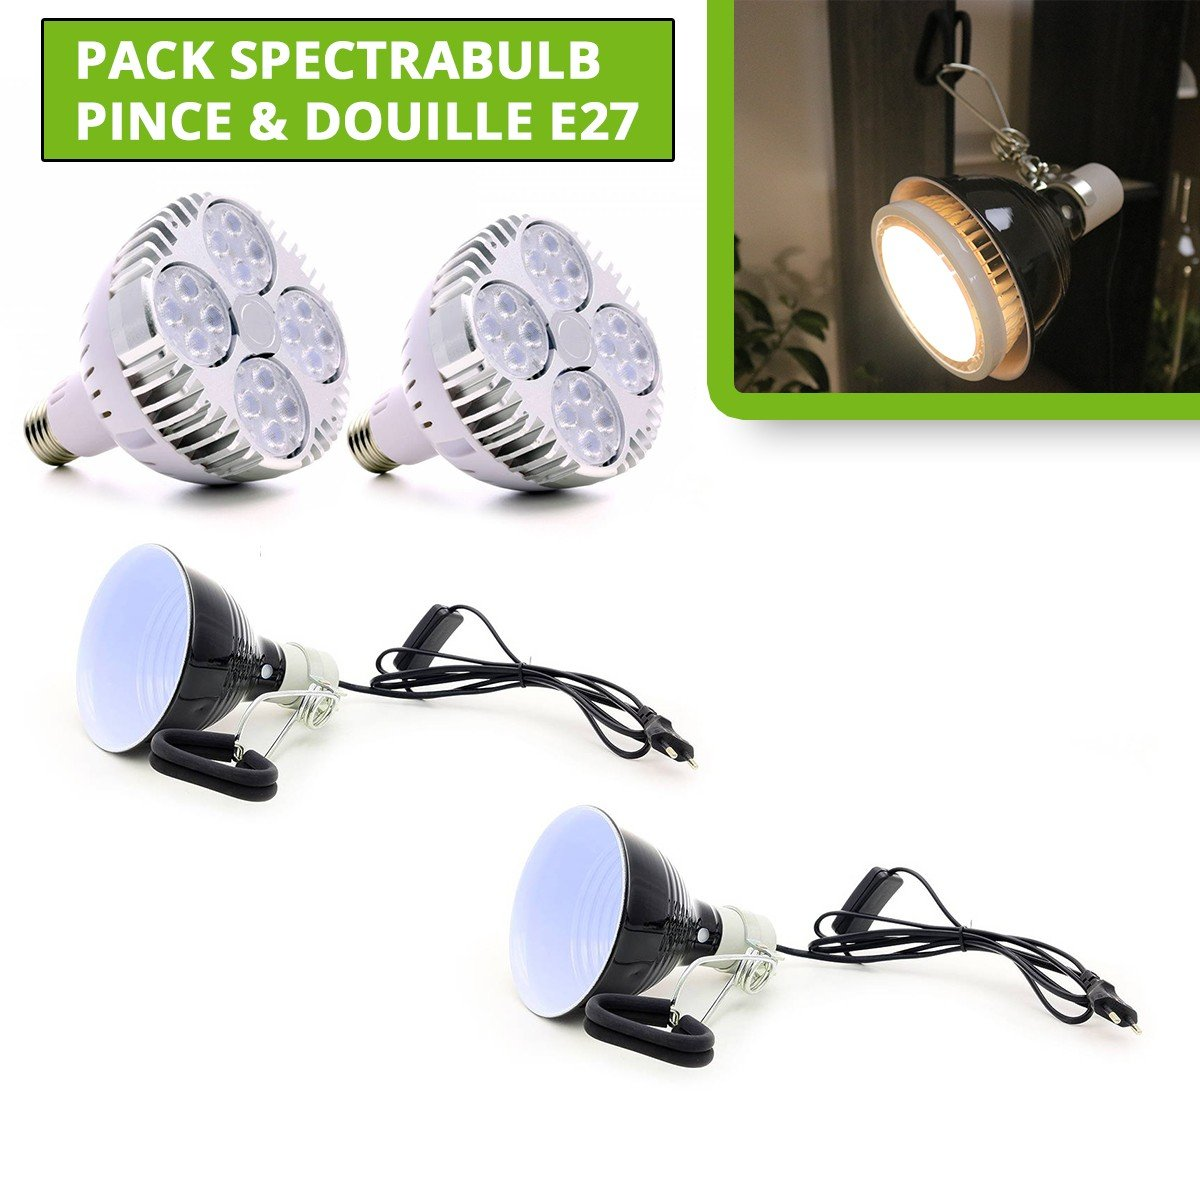 Kit complet pour bouturage - Serre + 24 cubes + gel de bouturage + scalpel